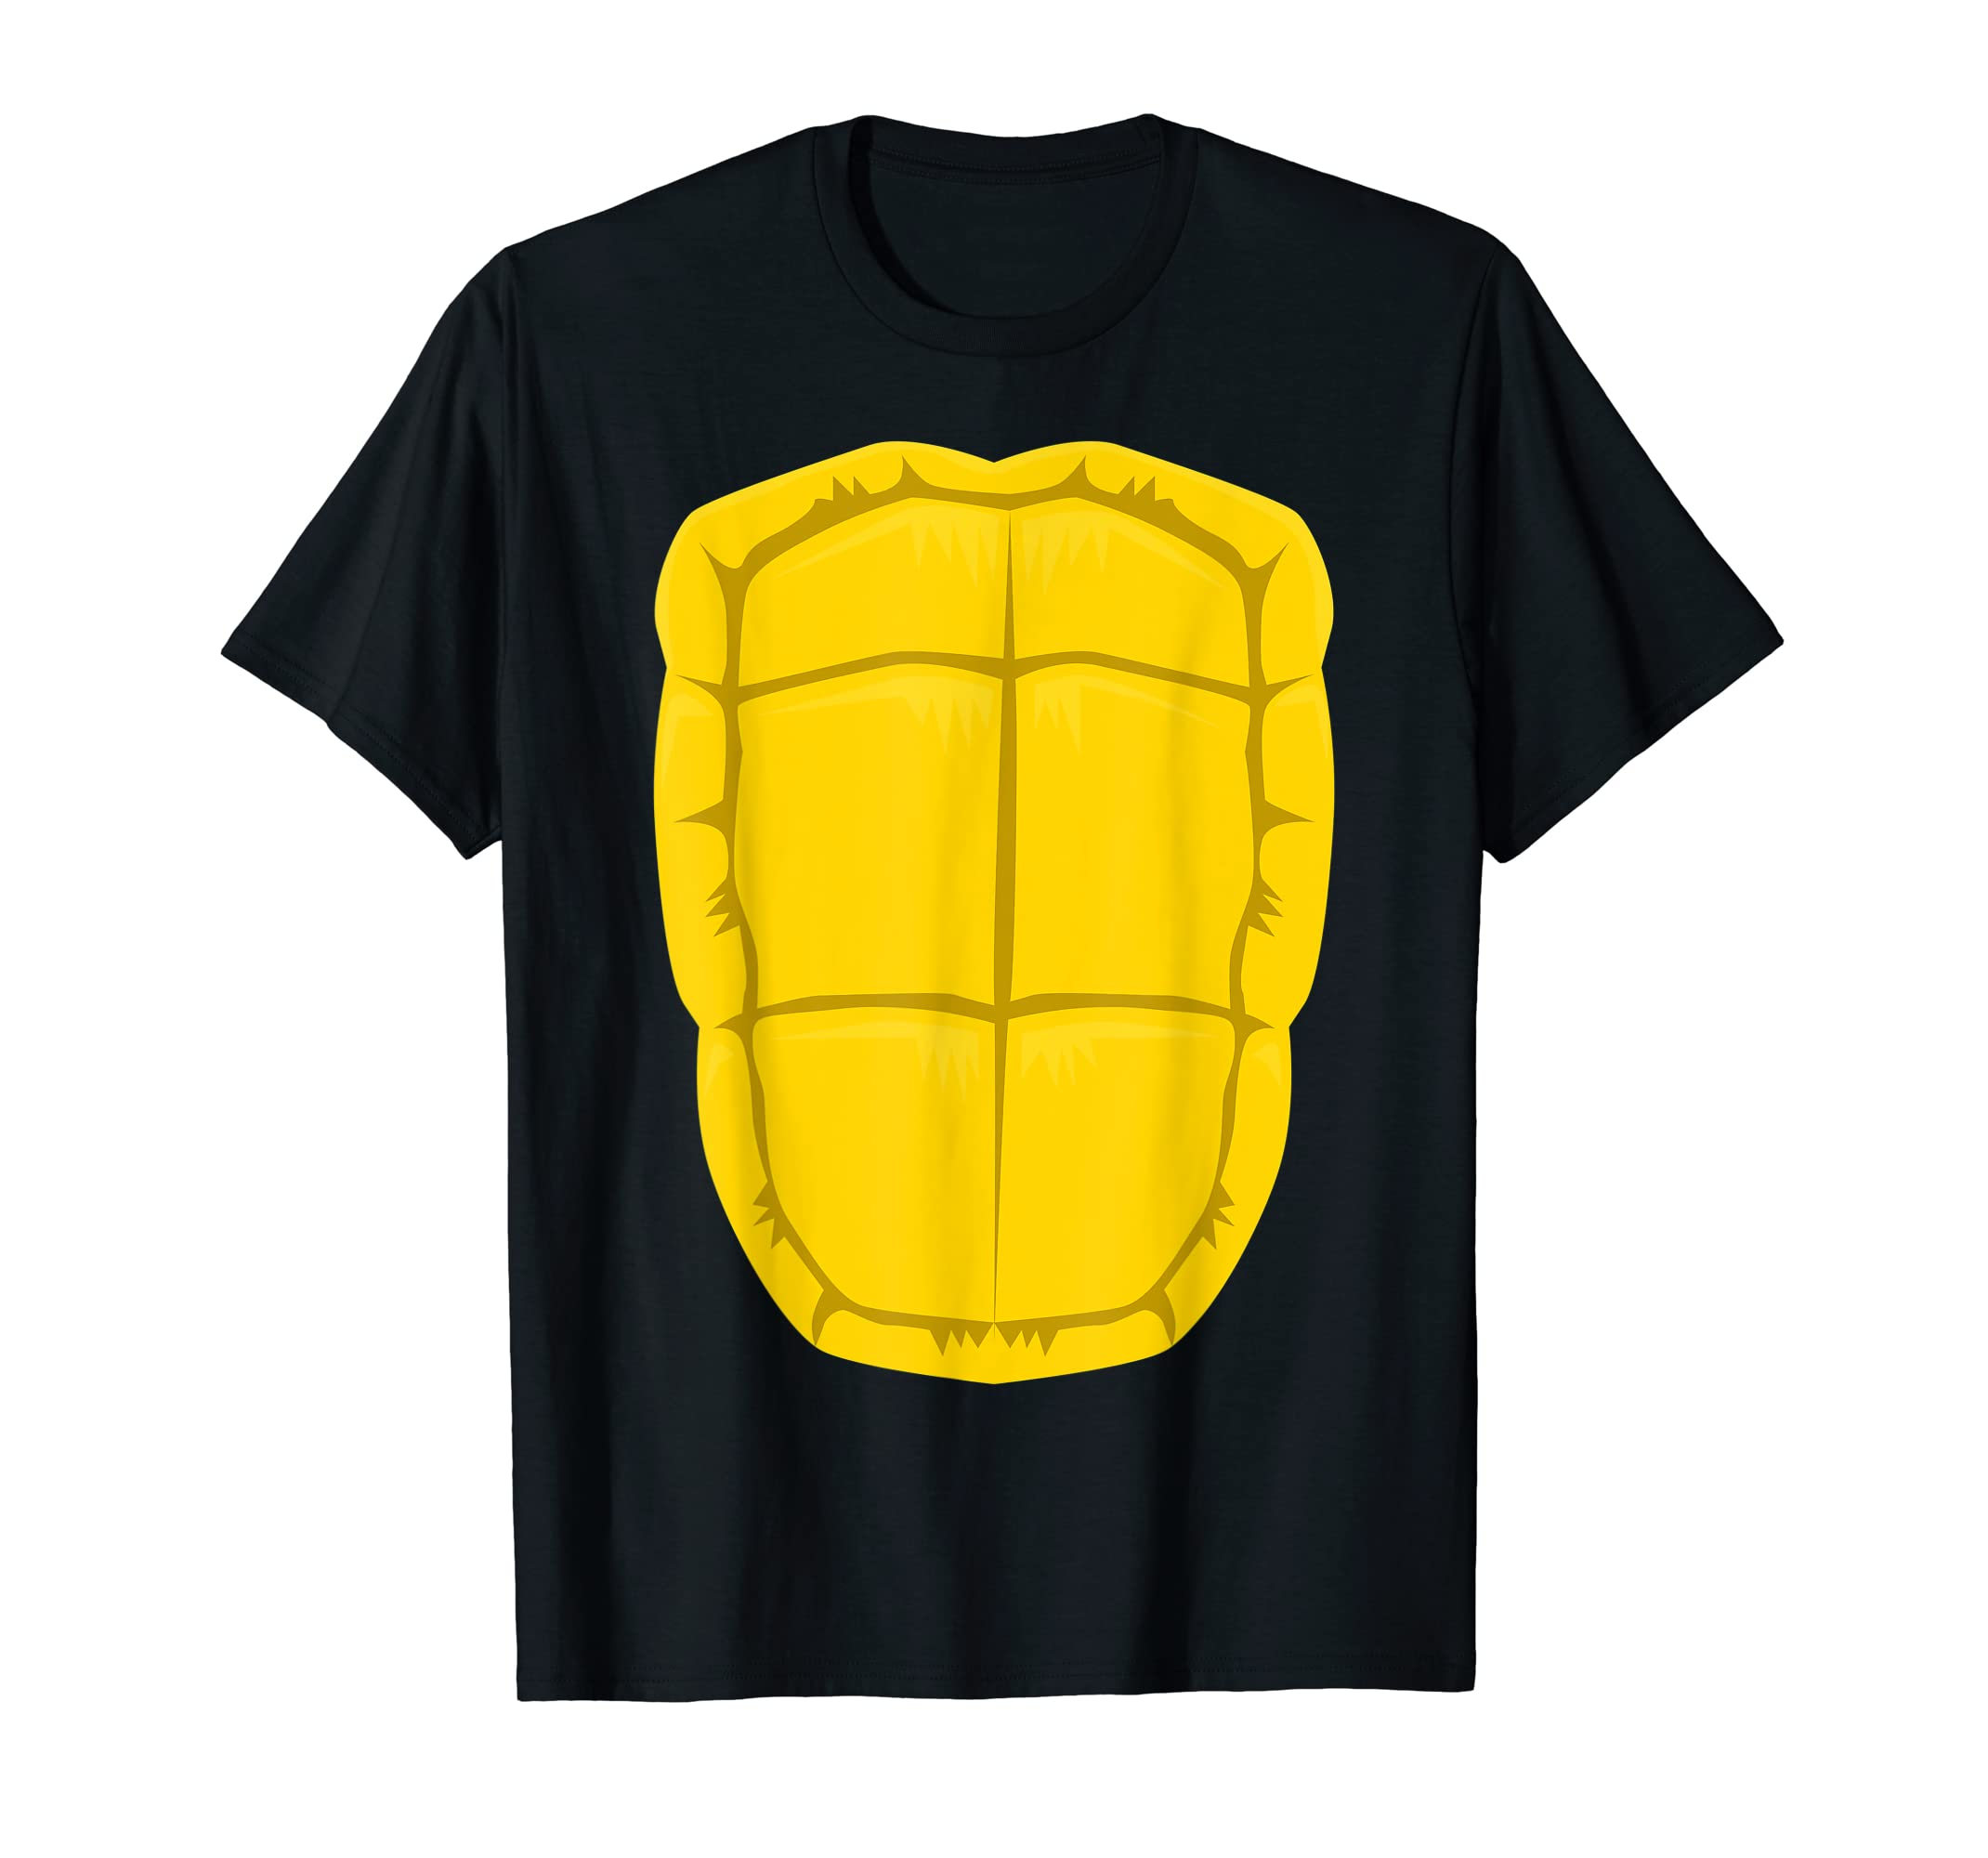 Funny Turtle Shell Halloween Costume Shirt Gift Clever DIY-Men's T-Shirt-Black